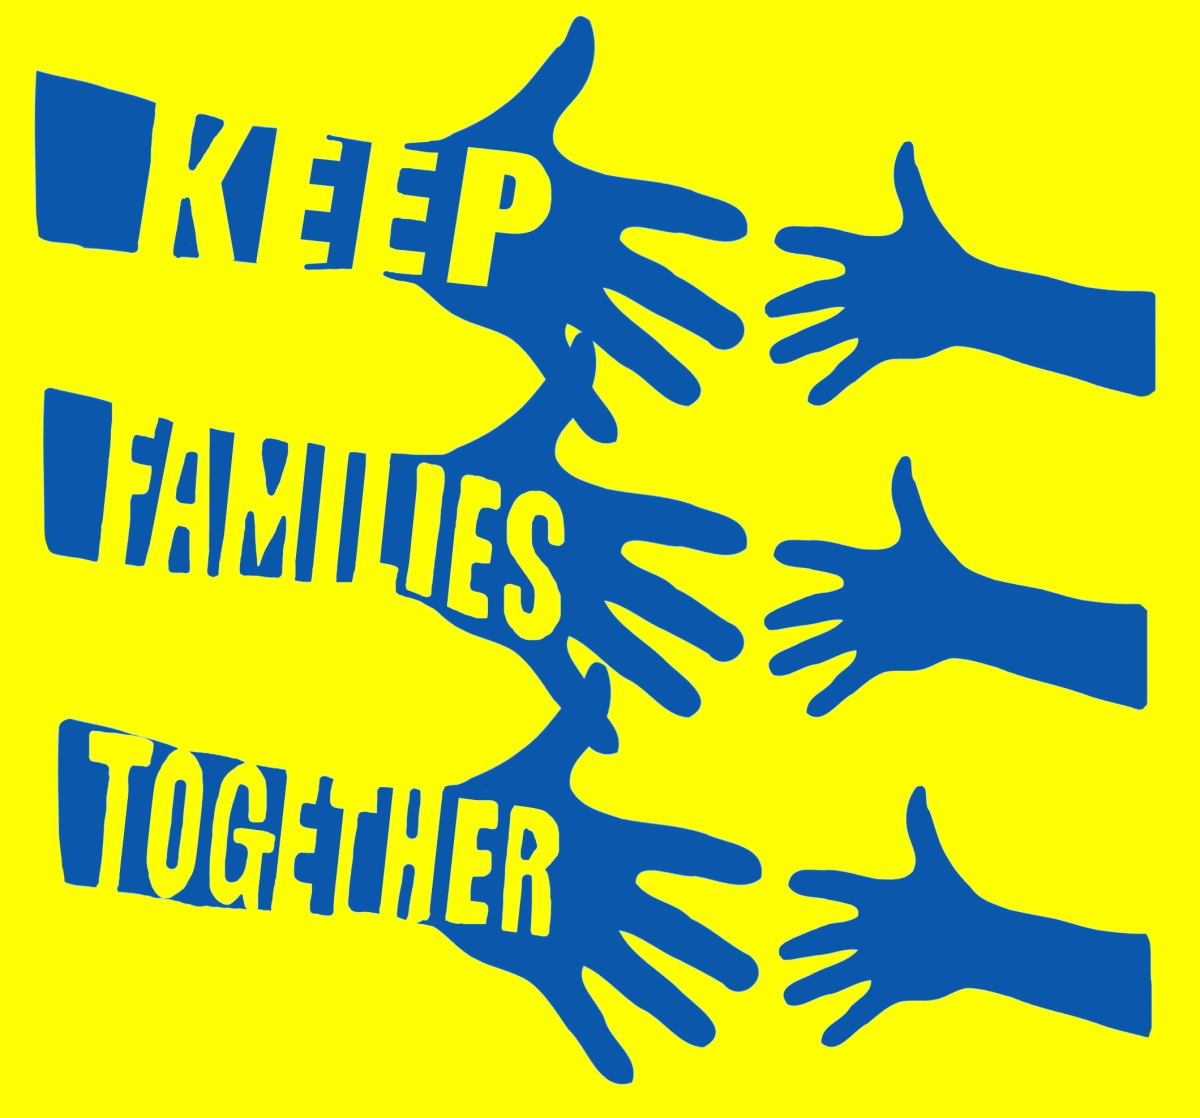 #KeepFamiliesTogether: How to Help